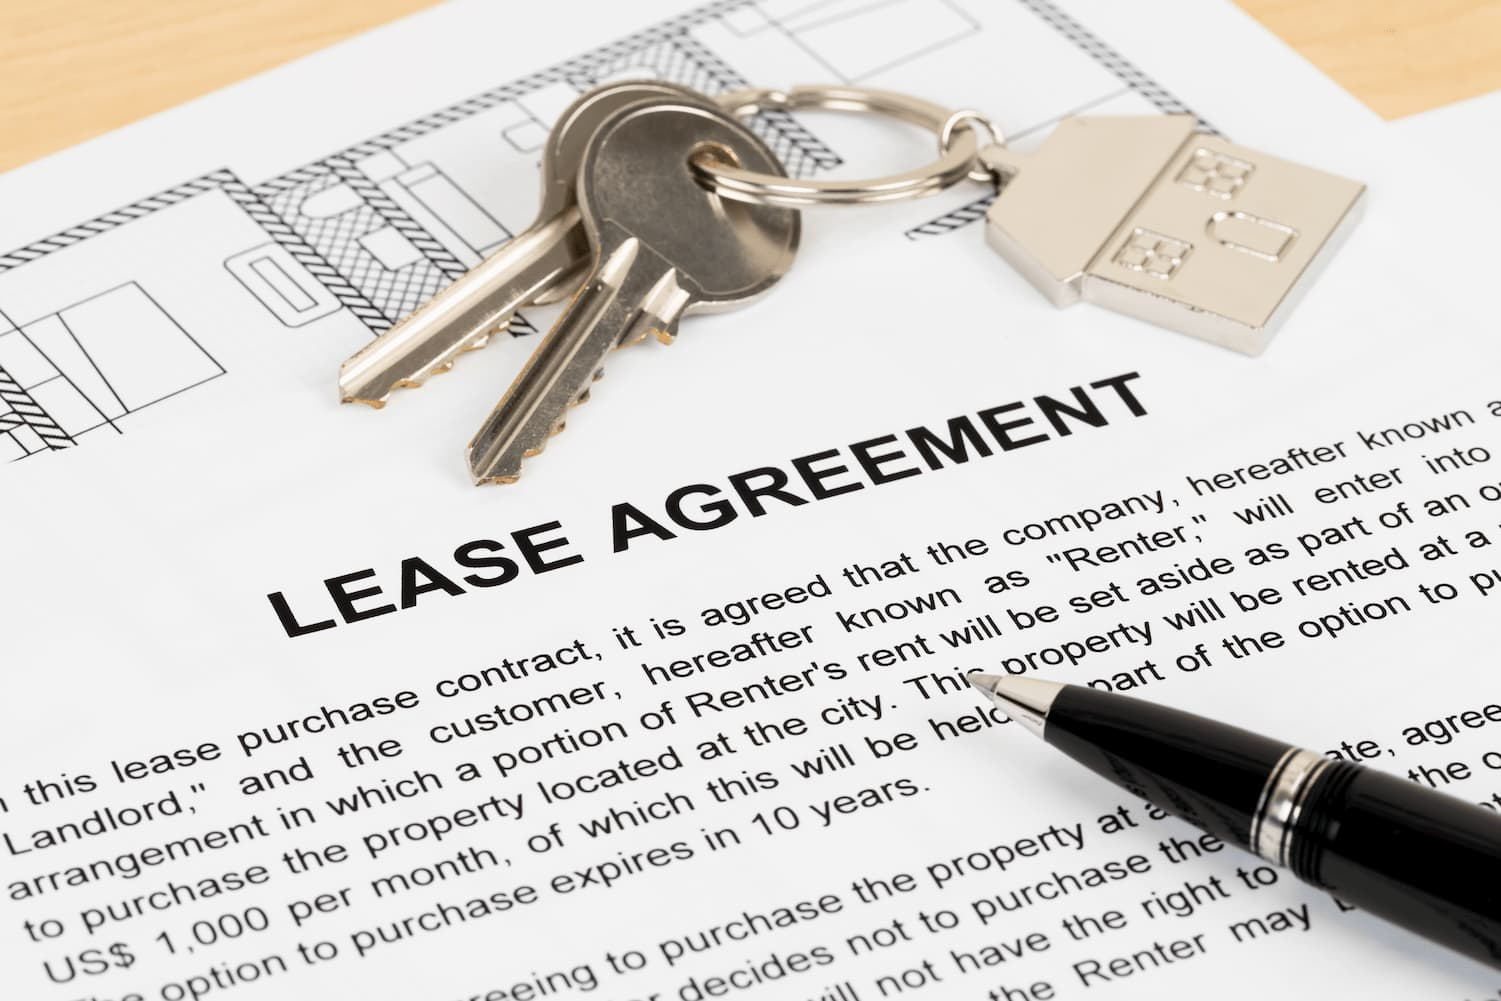 Avoid legal issues at your rental property as a landlord